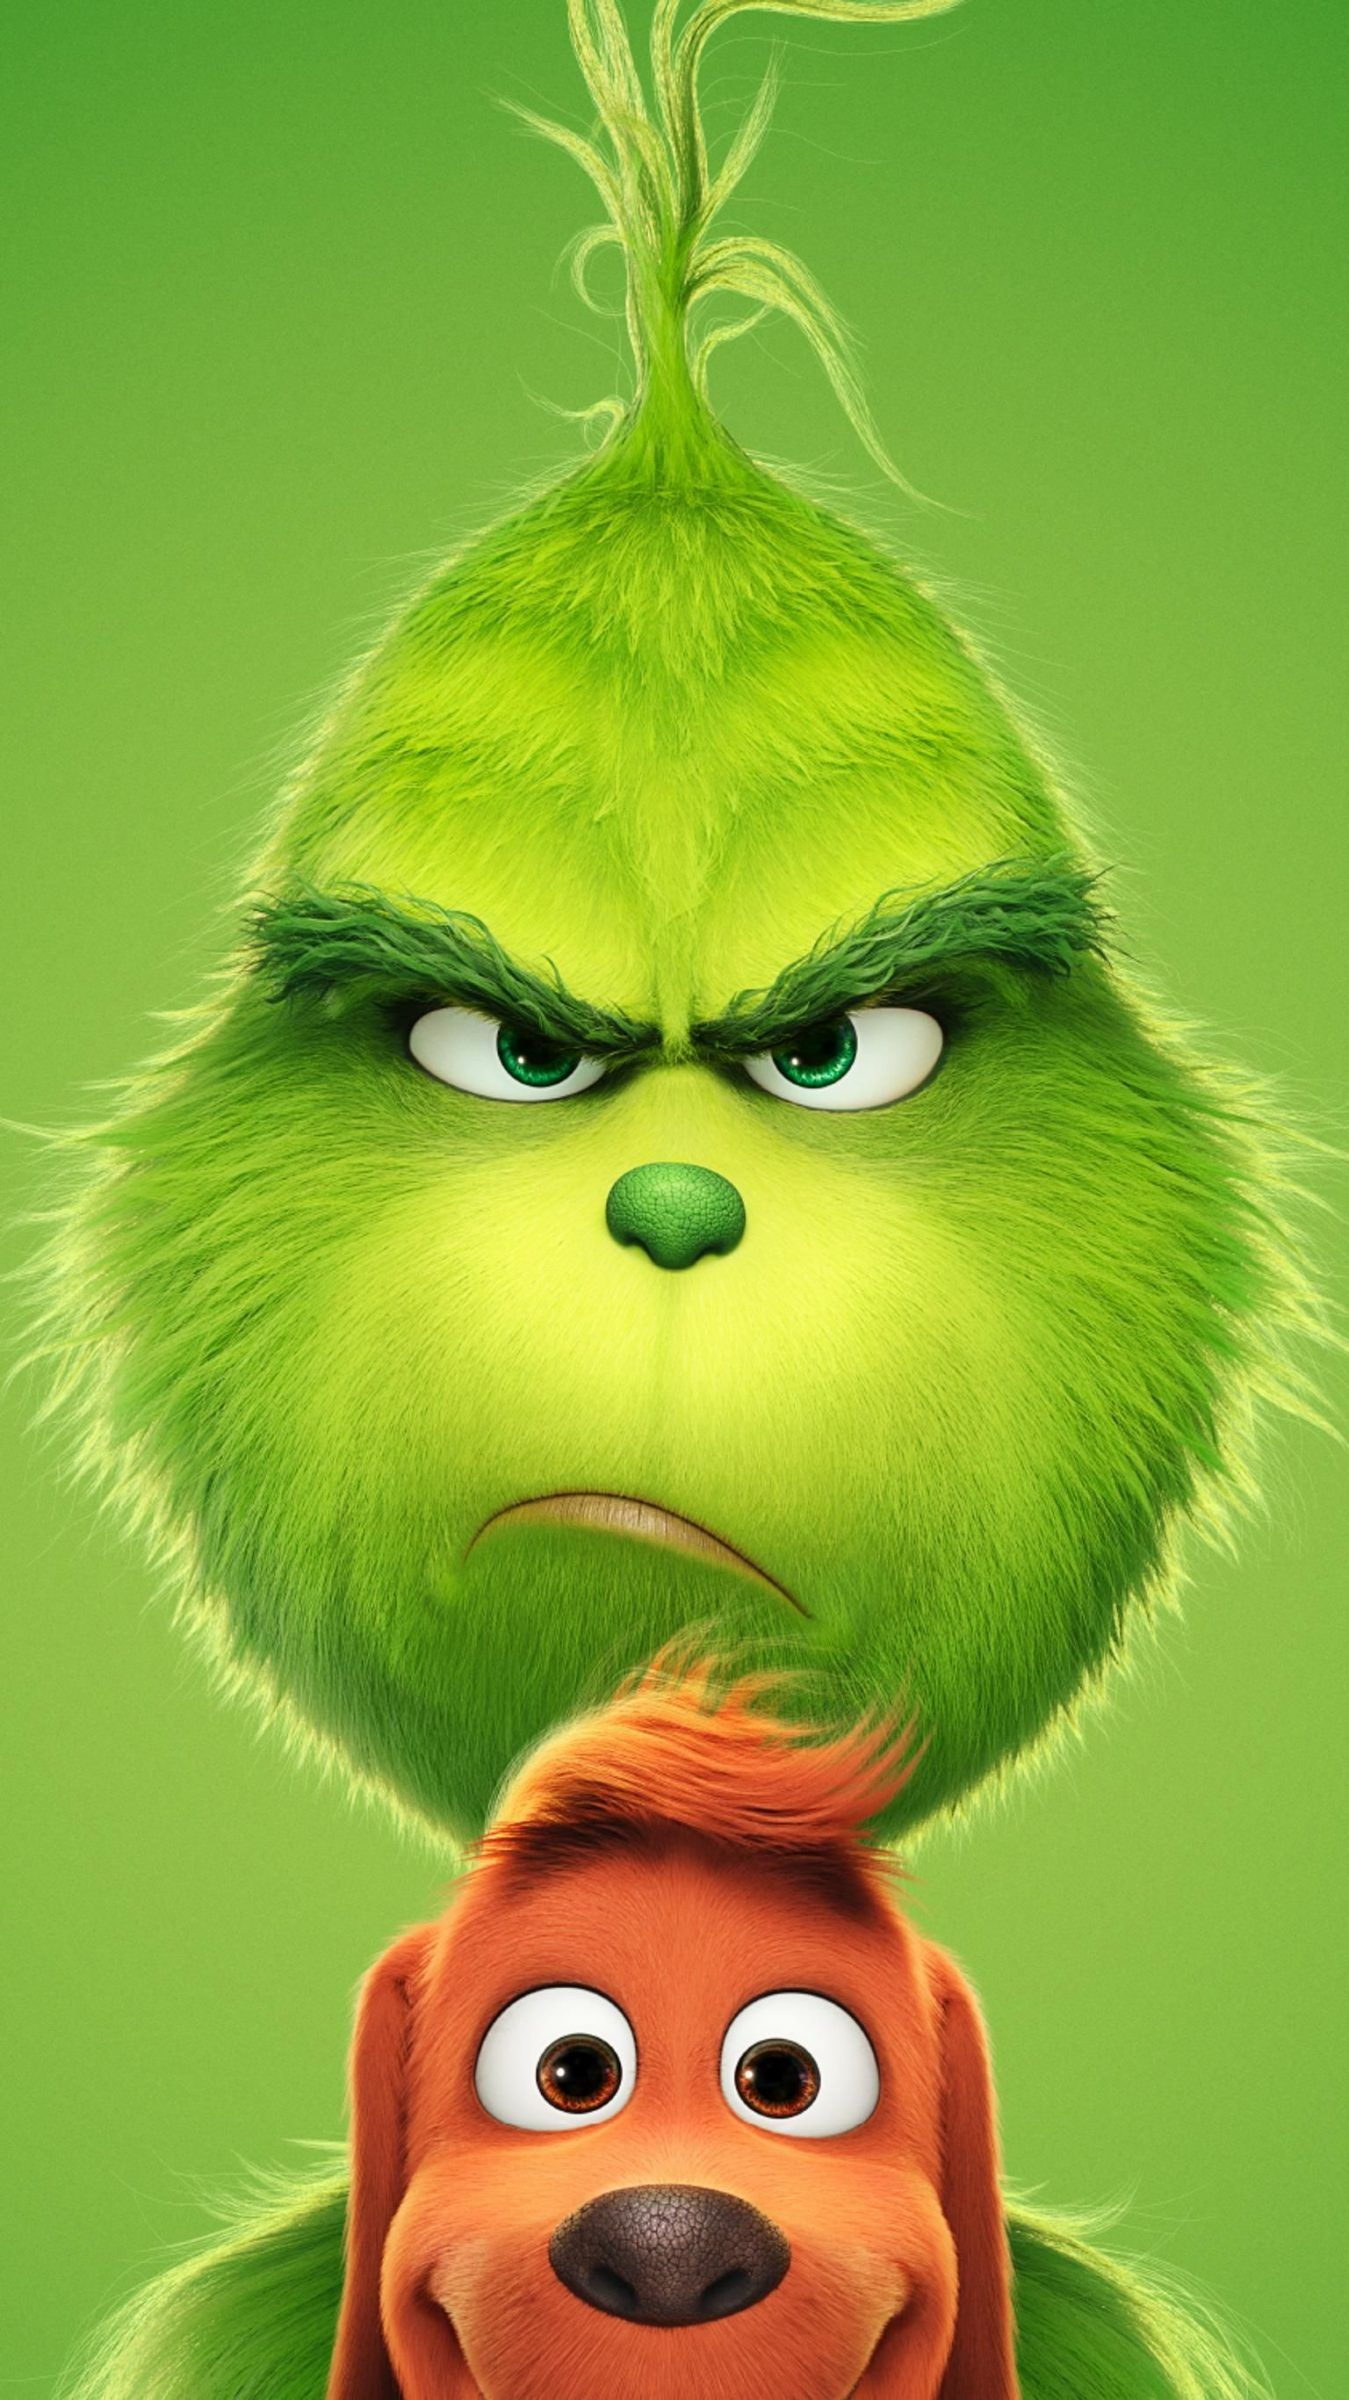 The Grinch 2018 HD Wallpapers 7wallpapersnet The grinch full 1349x2400